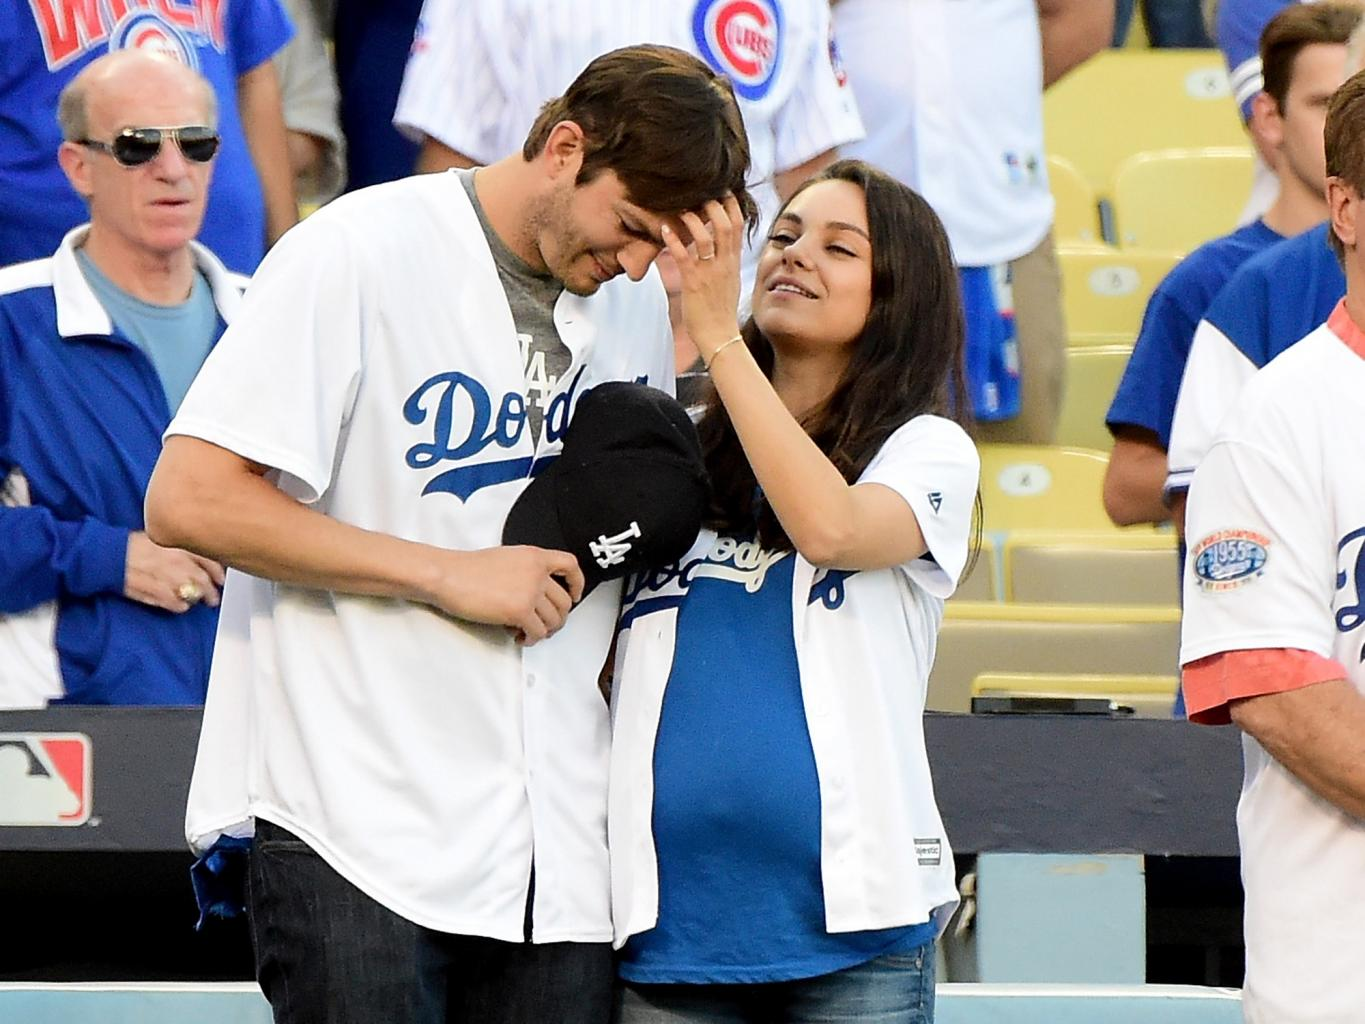 Mila Kunis and Ashton Kutcher Enjoy a Date Night Cheering on the Dodgers